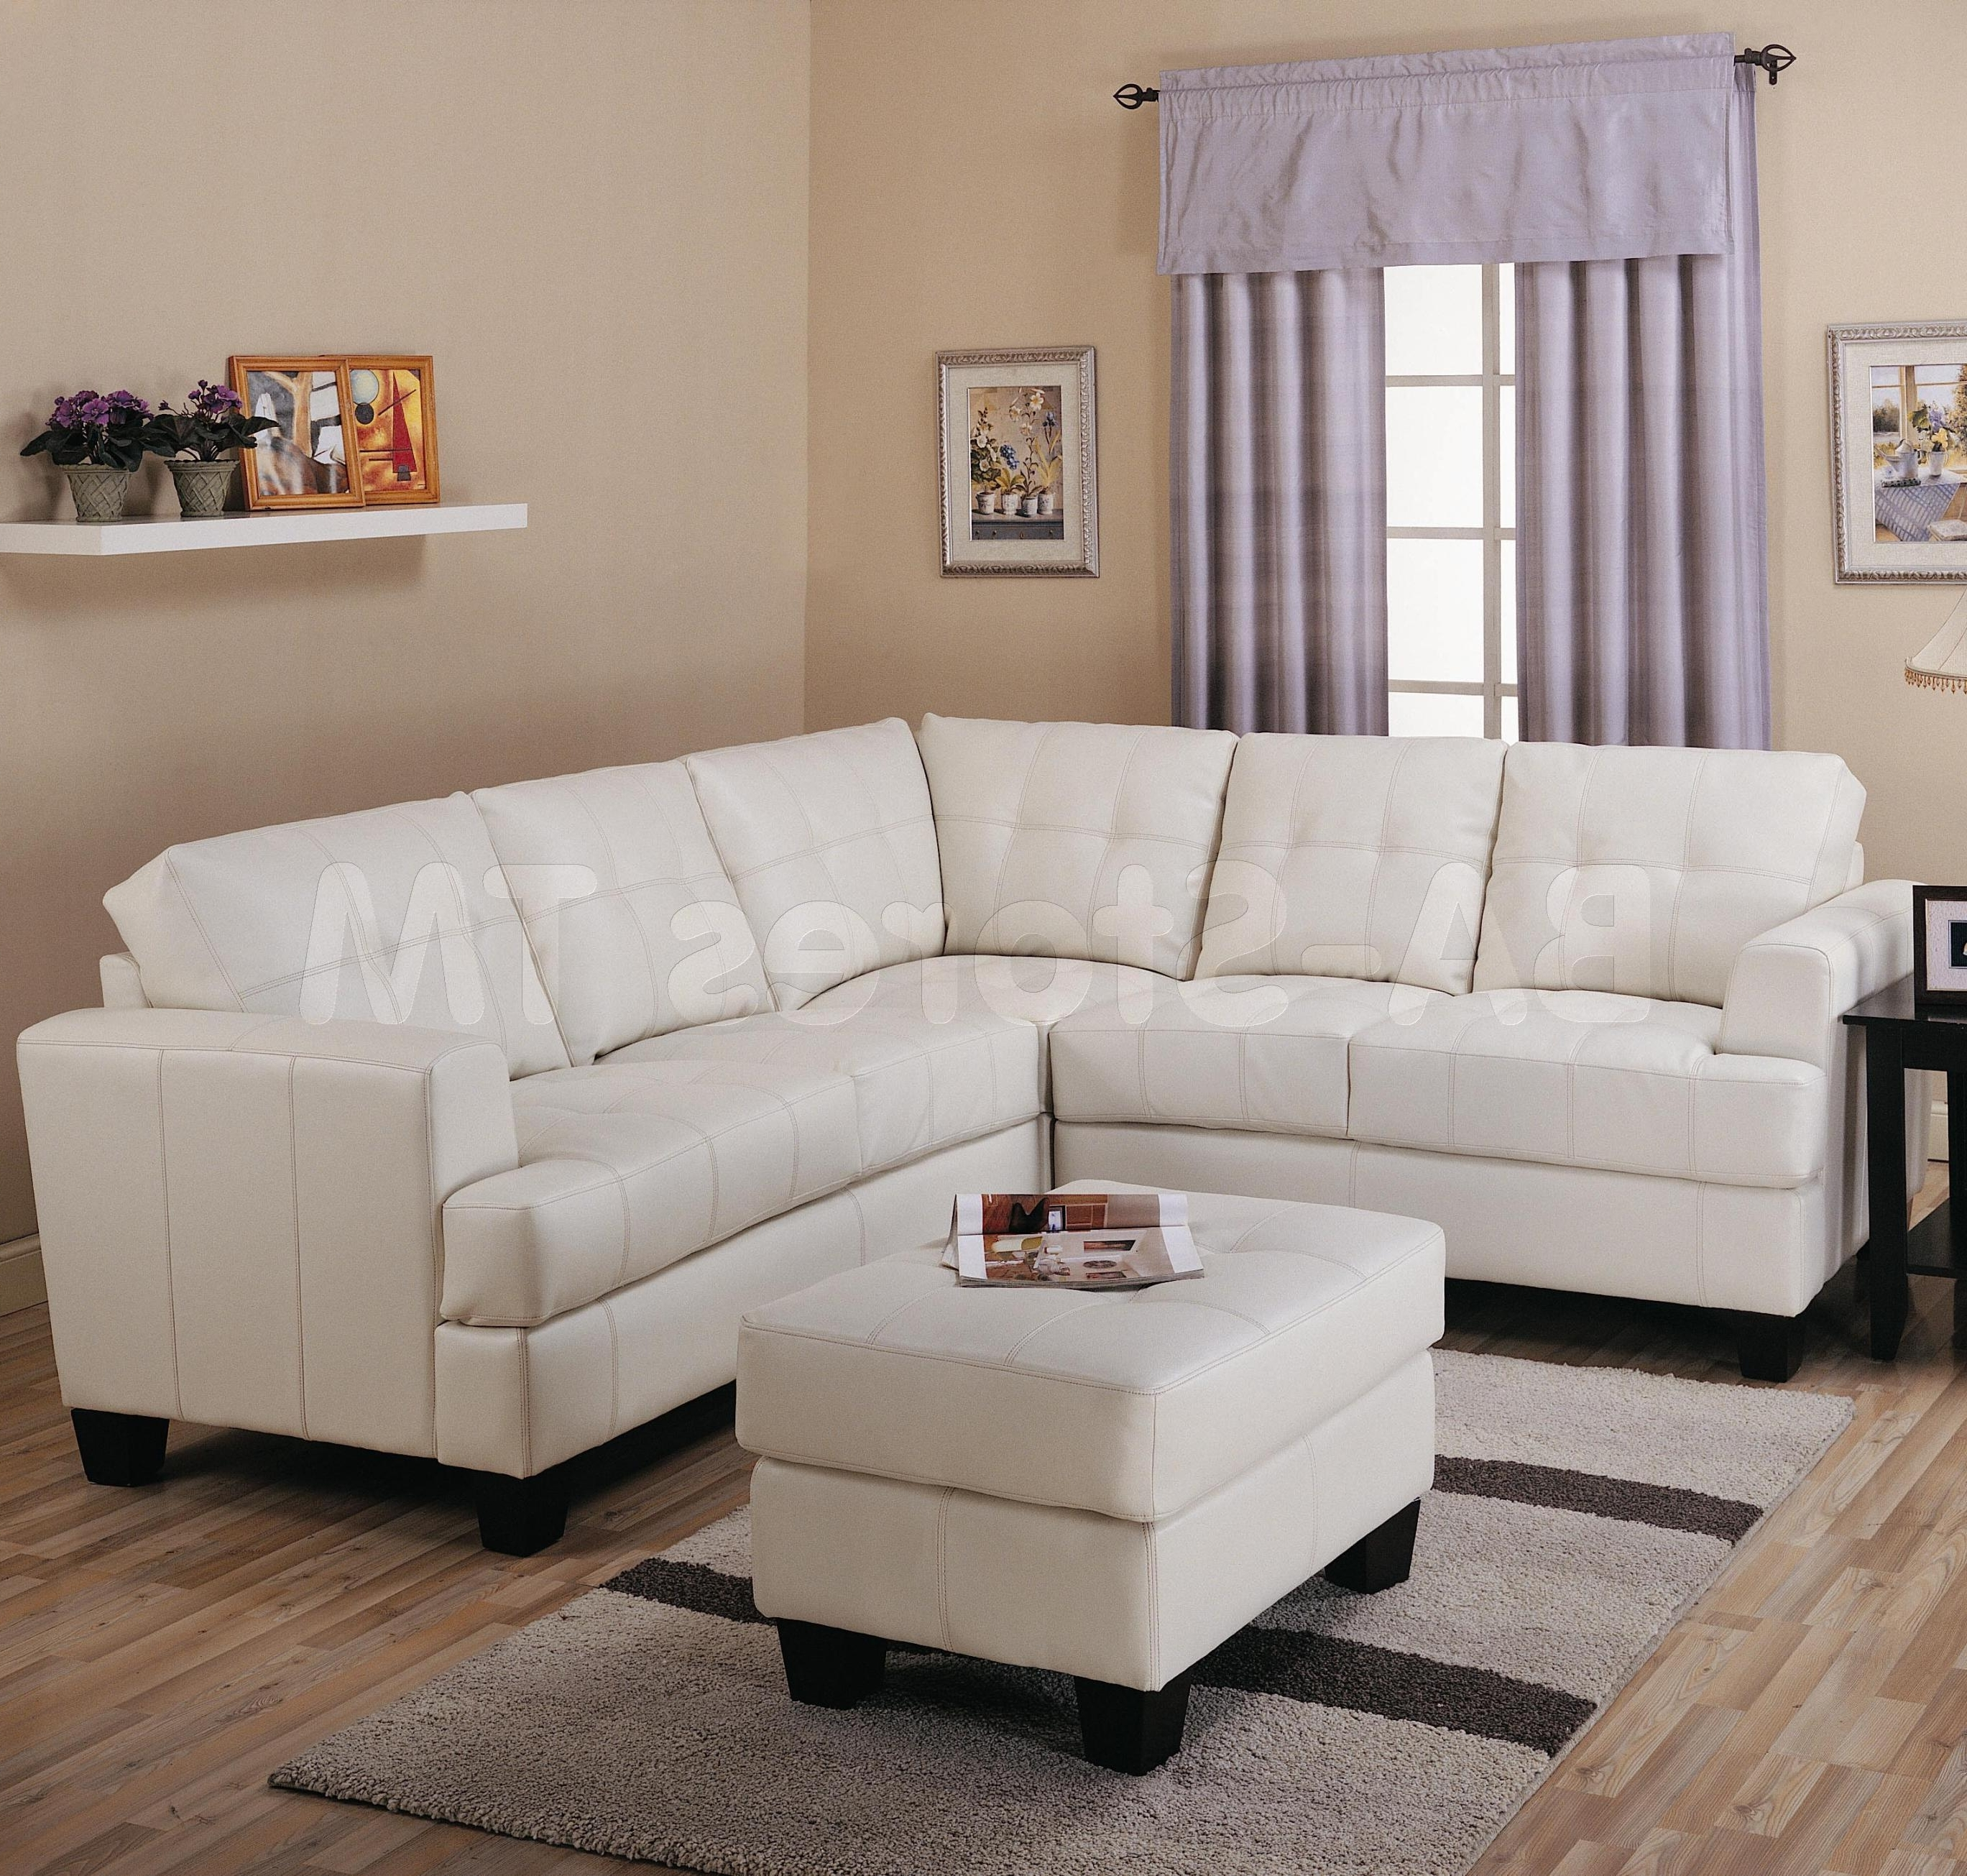 Greenville Sc Sectional Sofas Regarding Fashionable Furniture : Sectional Sofa 2 Piece Set Corner Couch Velvet (Gallery 2 of 20)